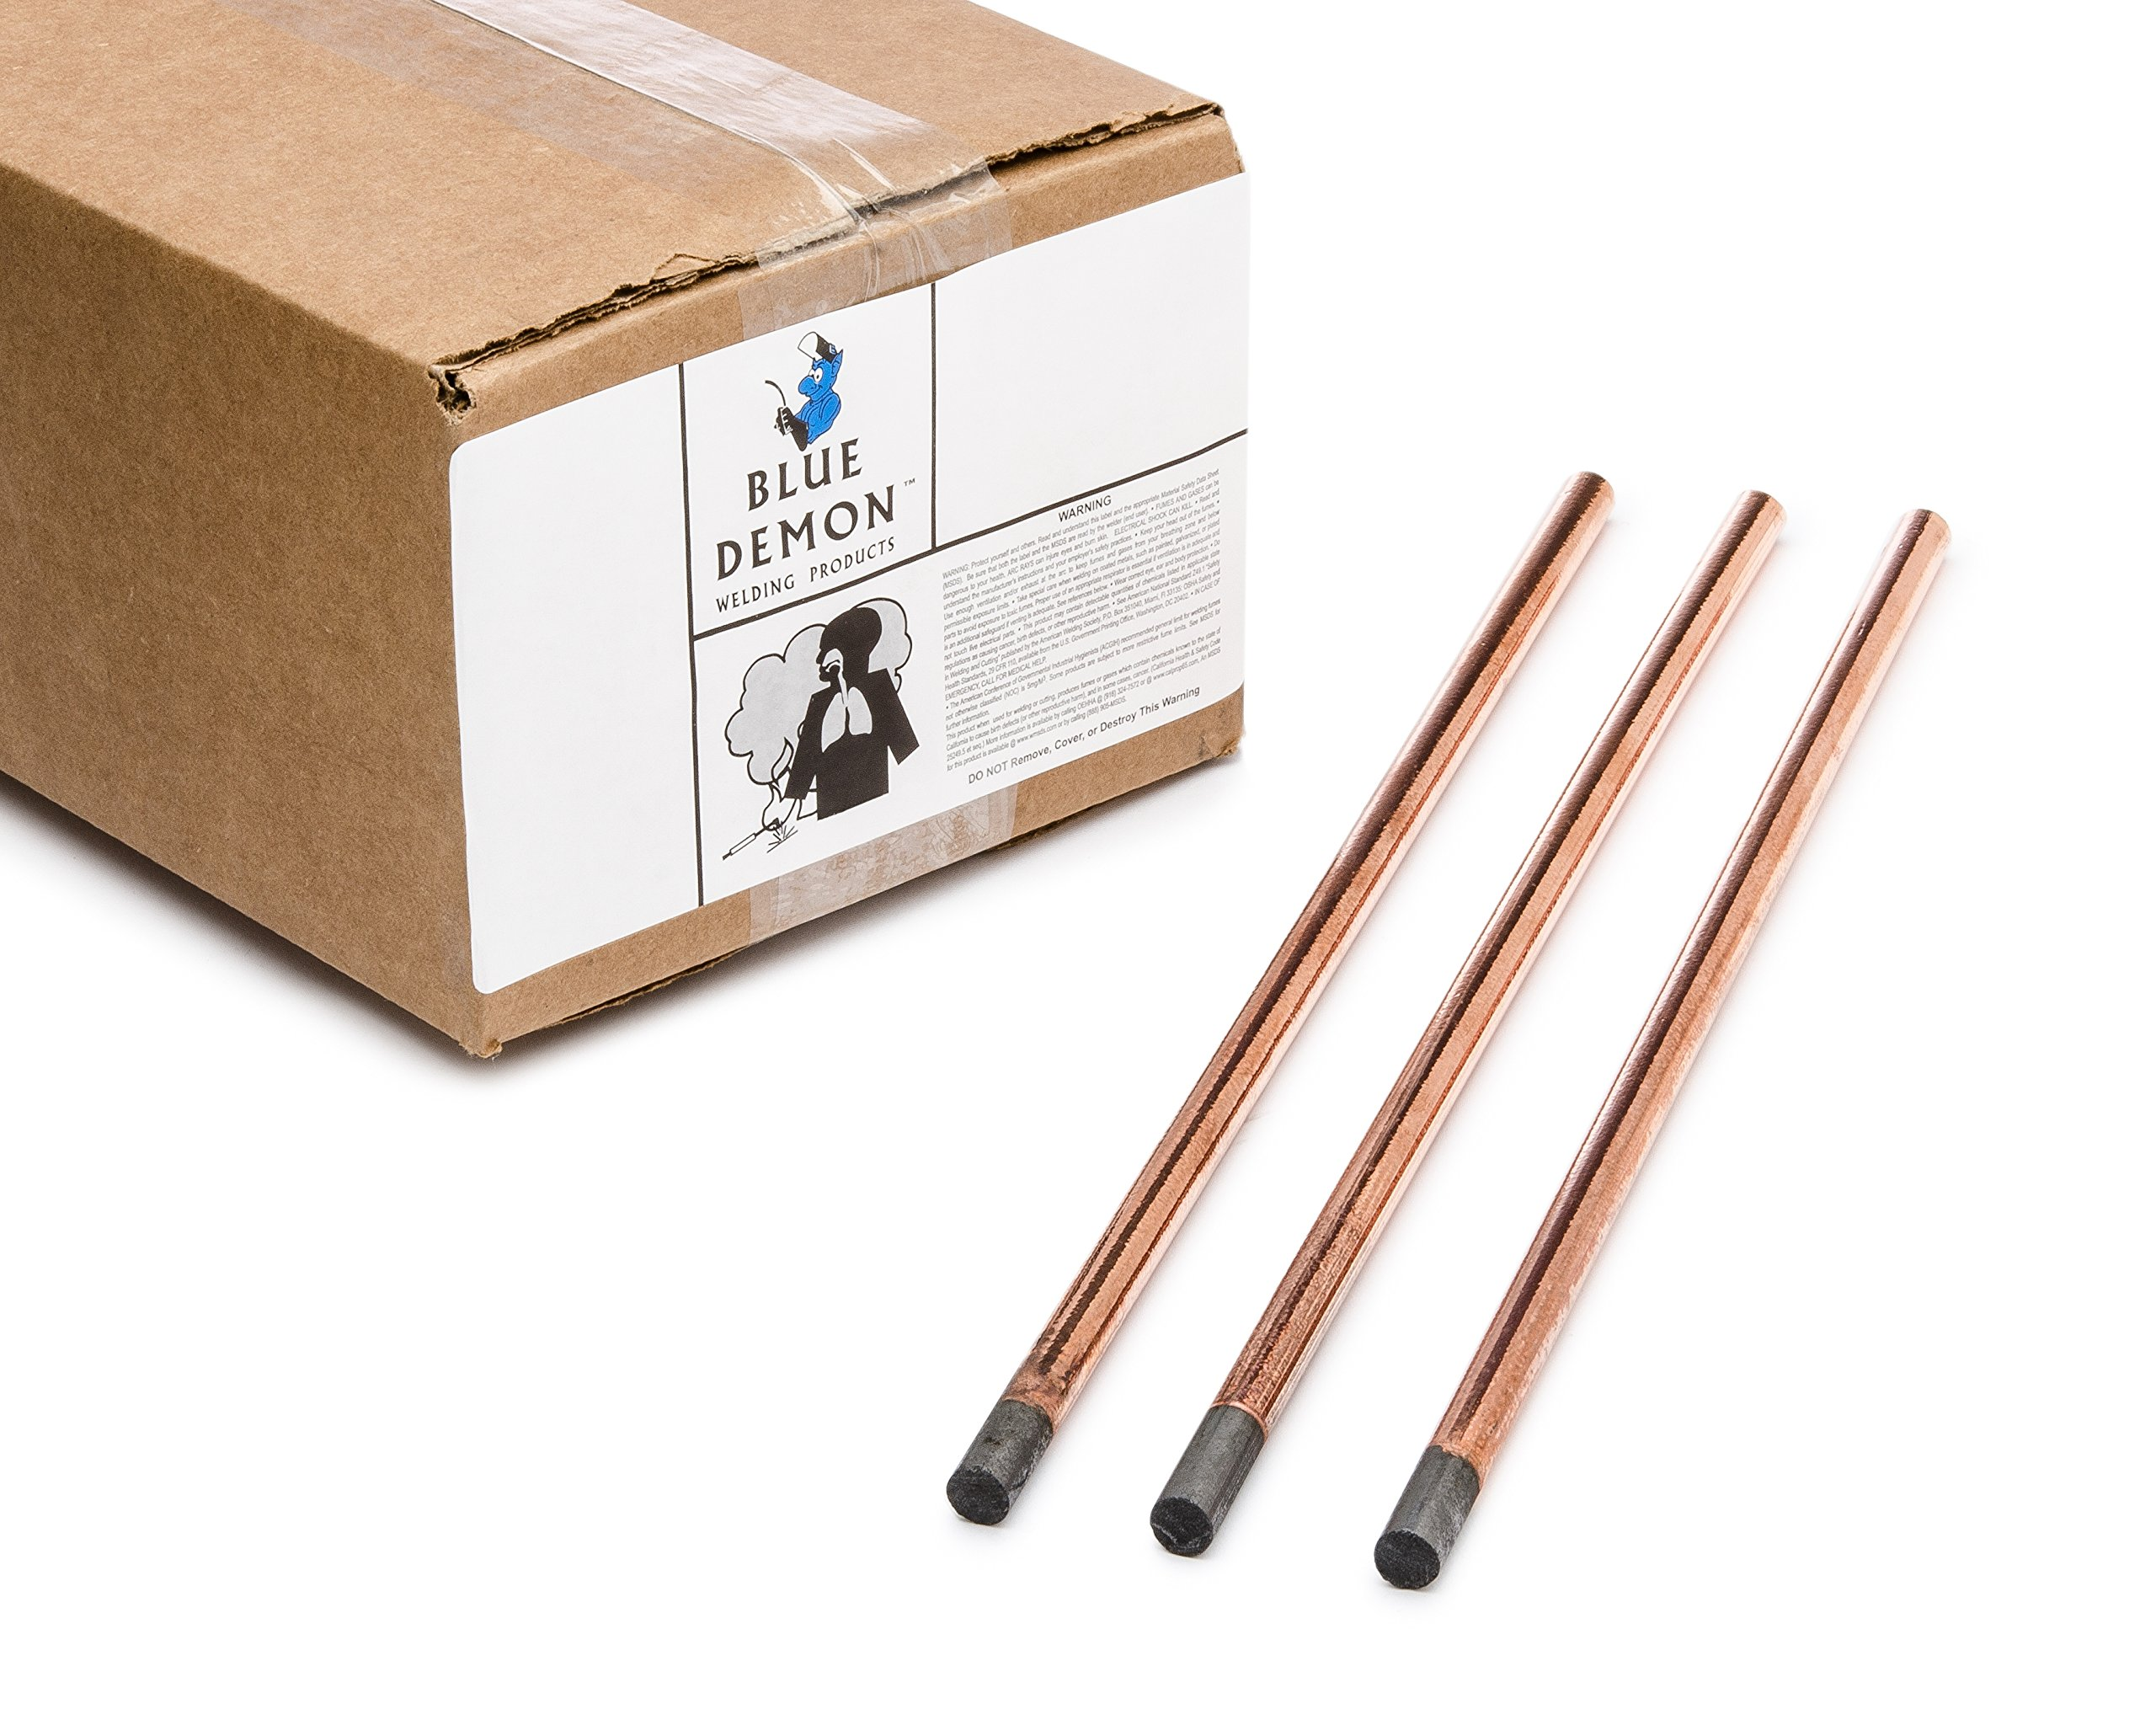 Blue Demon ACGE-CC-18 Gouging Carbons 1/8'' x 12'' Copper Coated (100 Piece Pack)